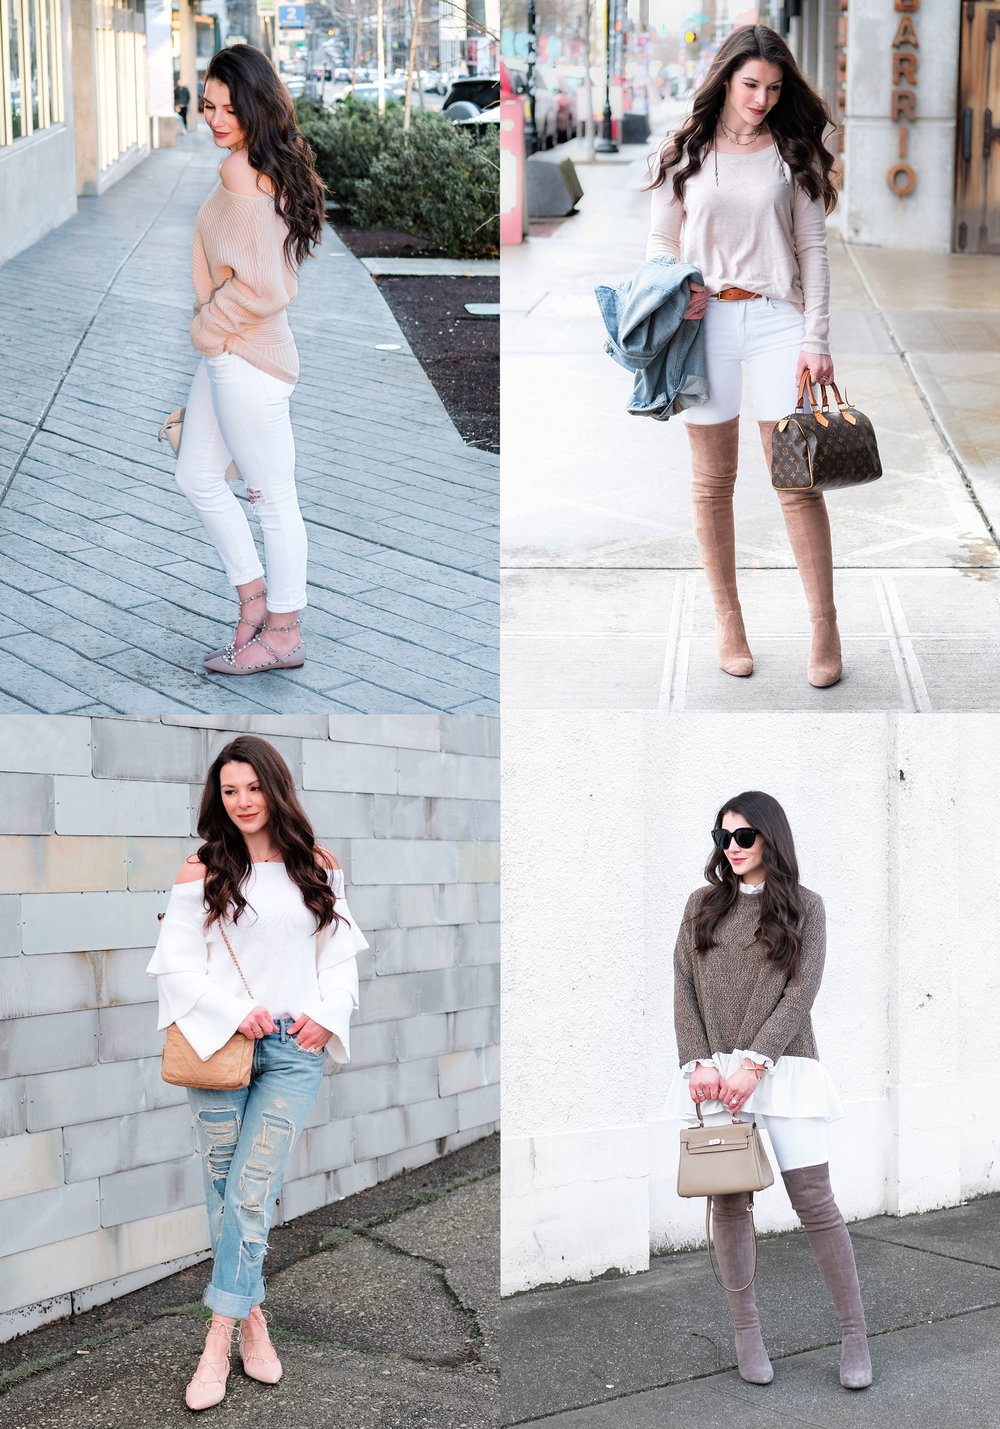 70ad069f0999 Cute spring outfits. Early spring outfits that will keep you warm. Outfits  for a